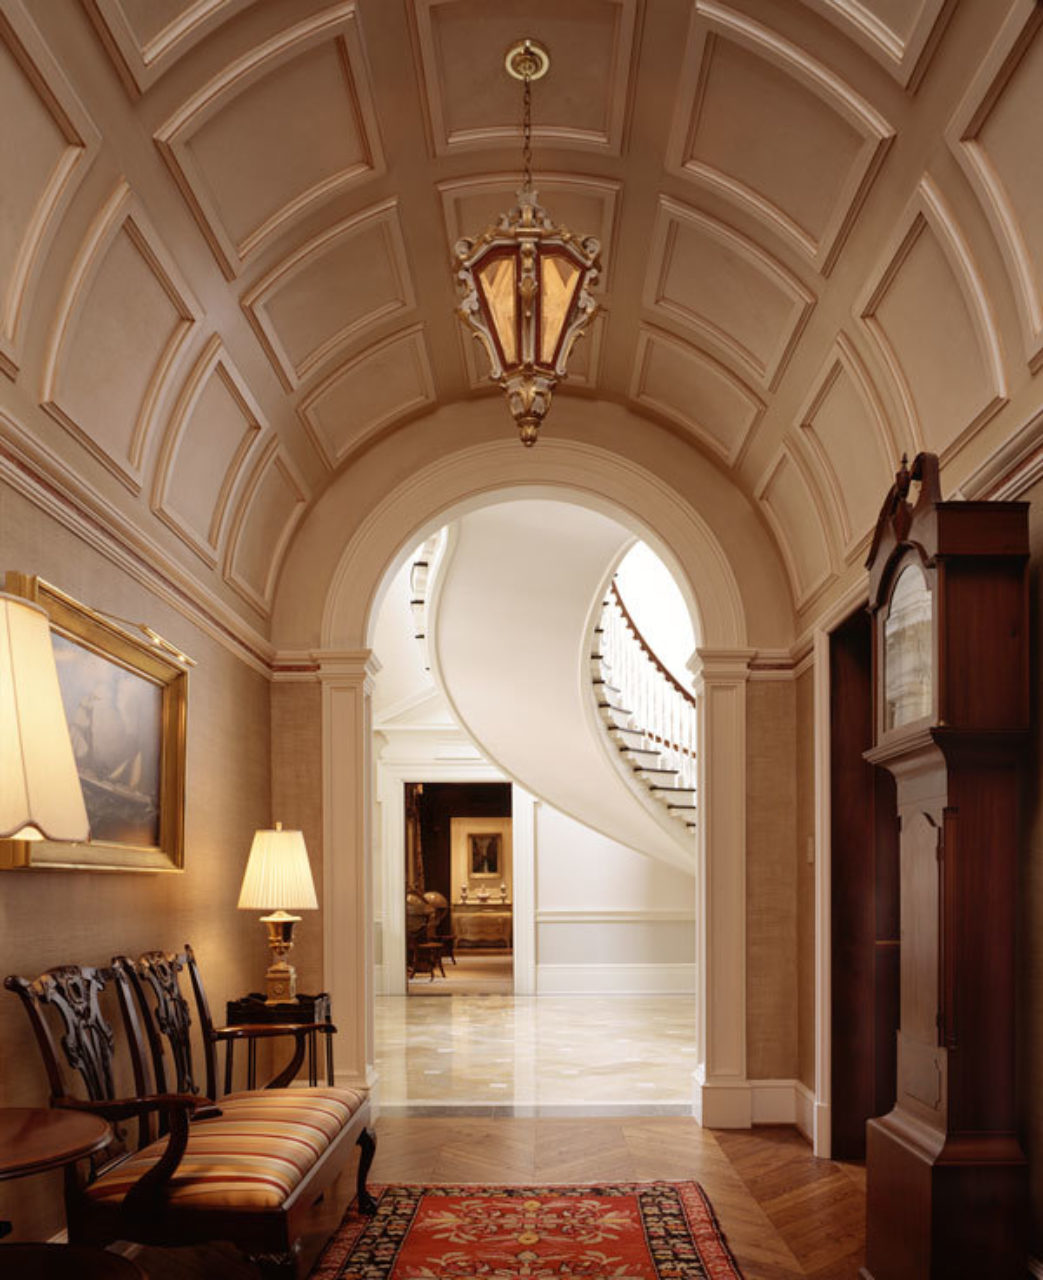 Classical Entry at a Macon, GA residence, designed by Norman Davenport Askins (Photo Credit: Brian Gassel)